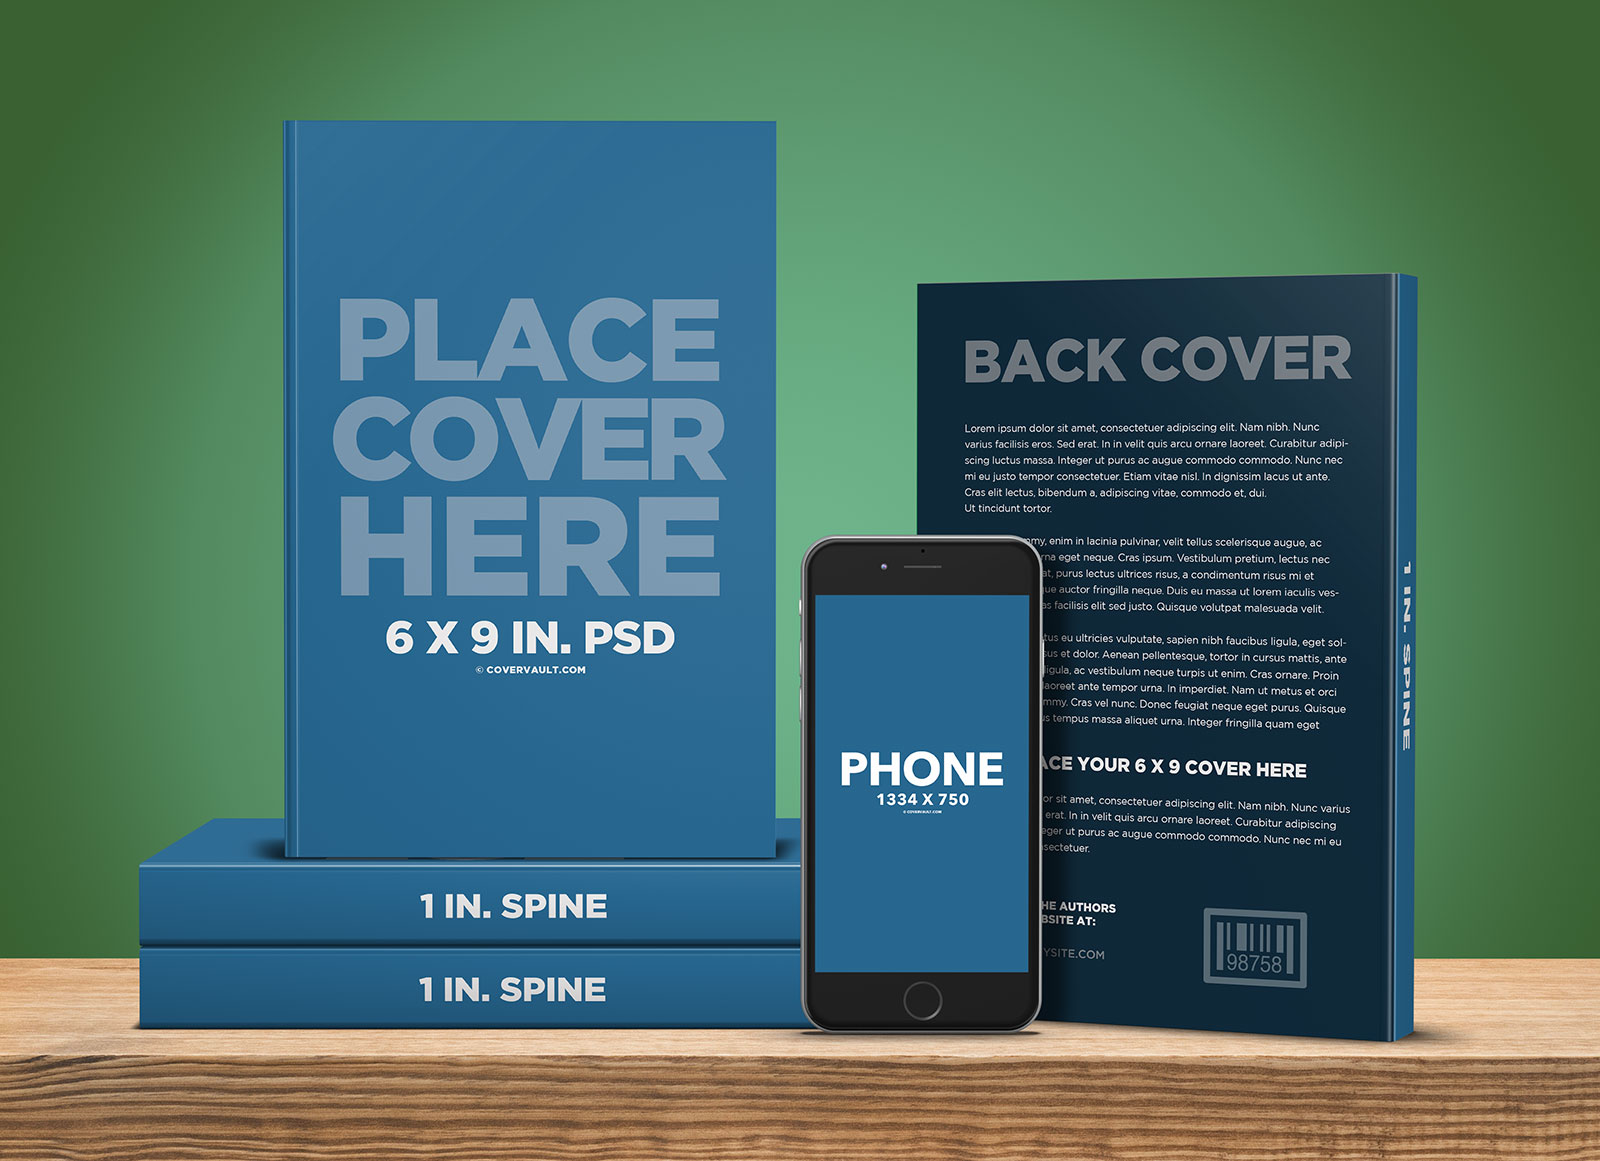 Free-Book-Promo-Template-with-Ereader-Mockup-PSD